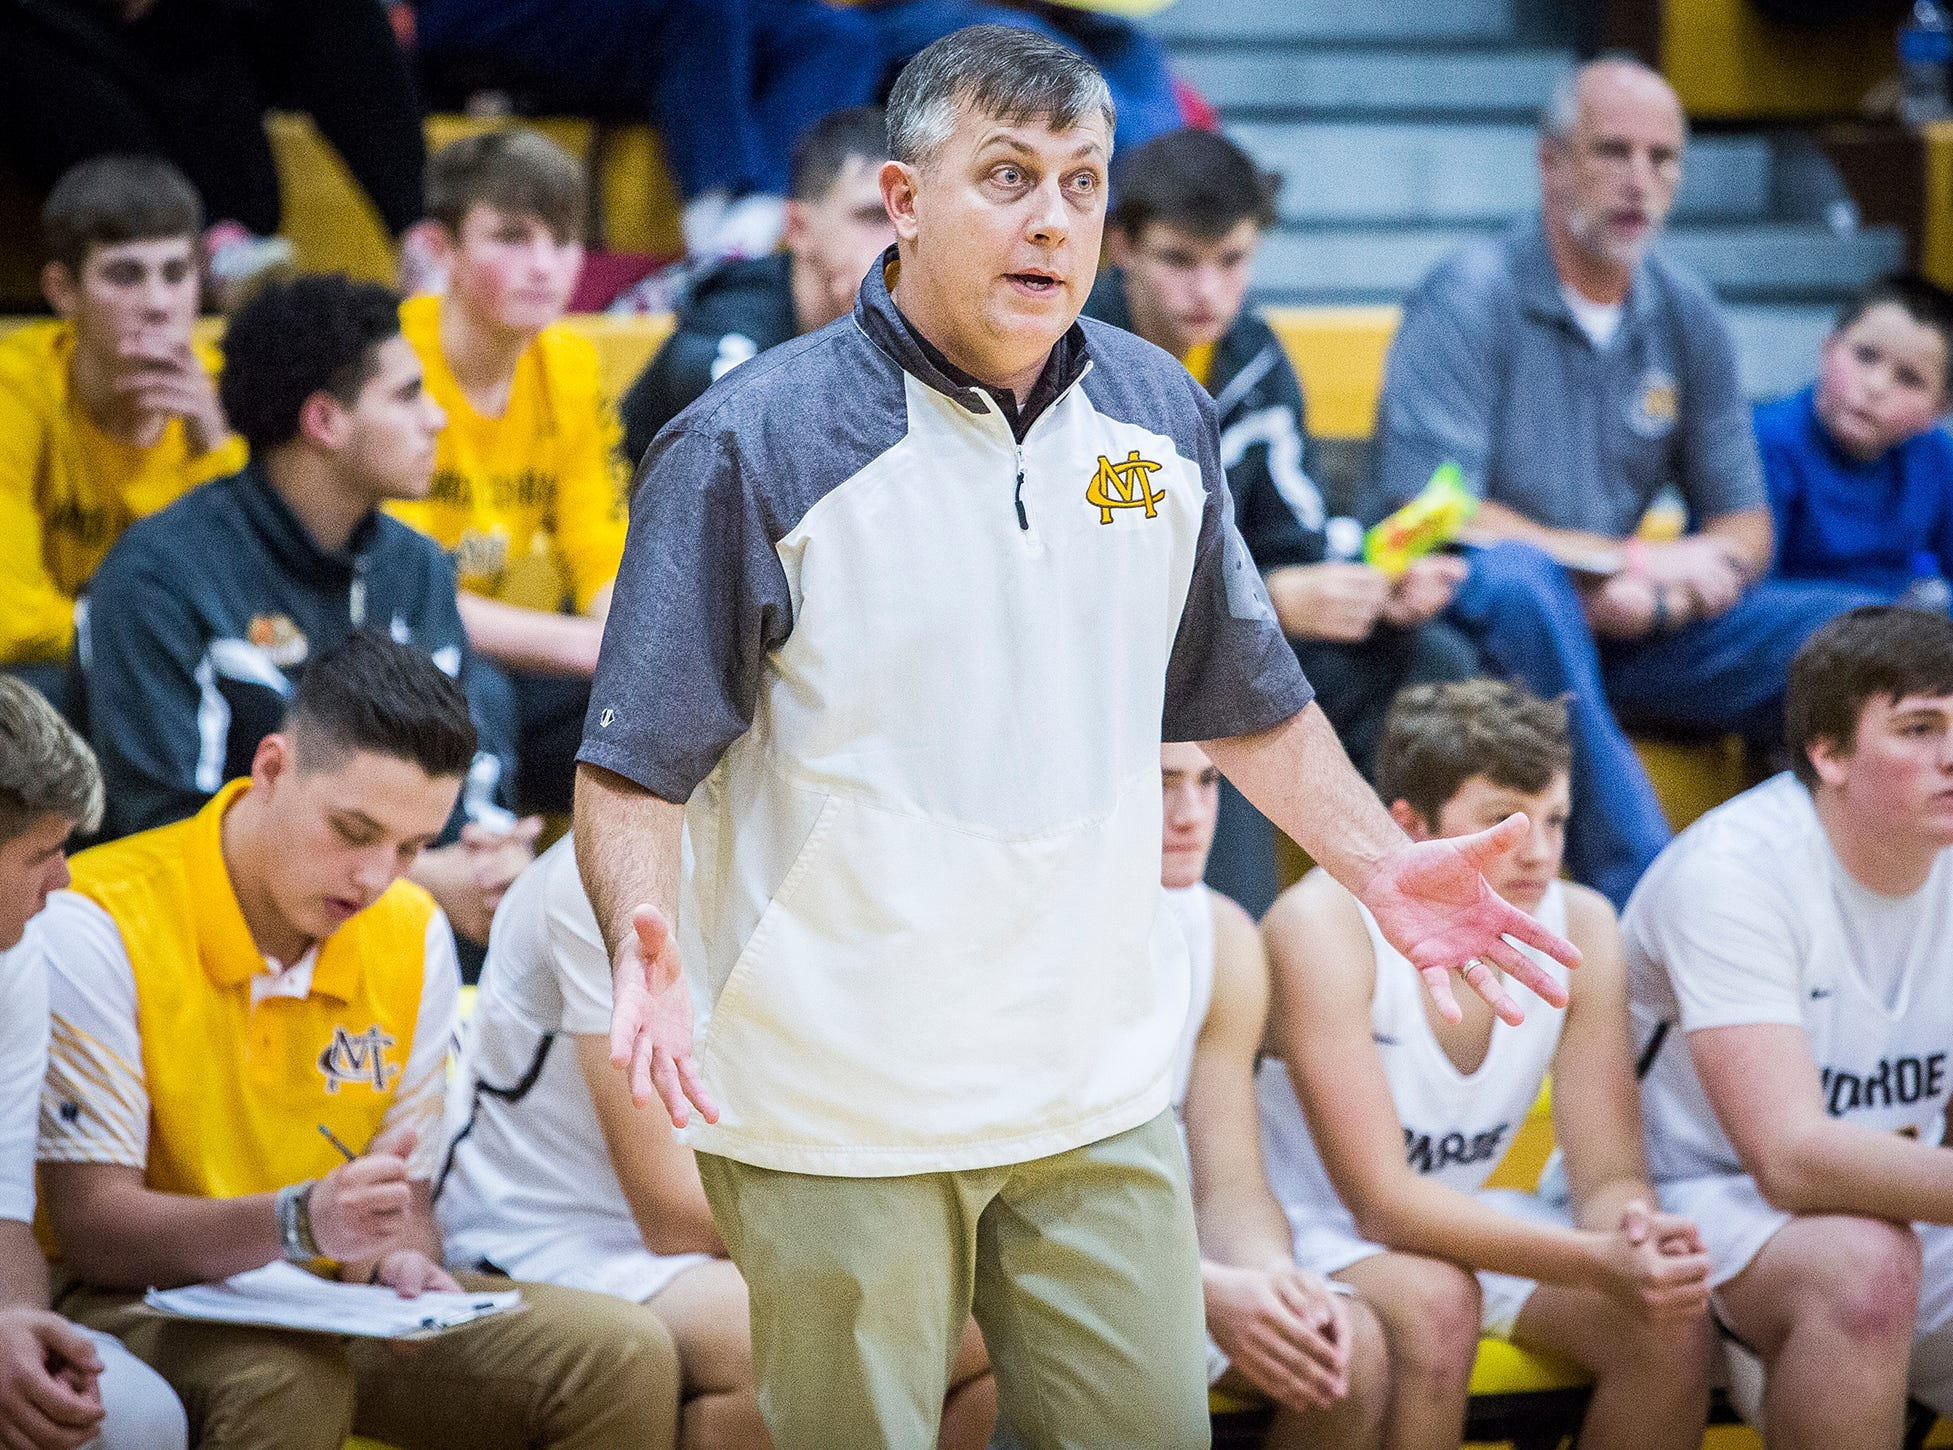 Monroe Central coach Justin Ullom instructs his team in a win over Daleville.